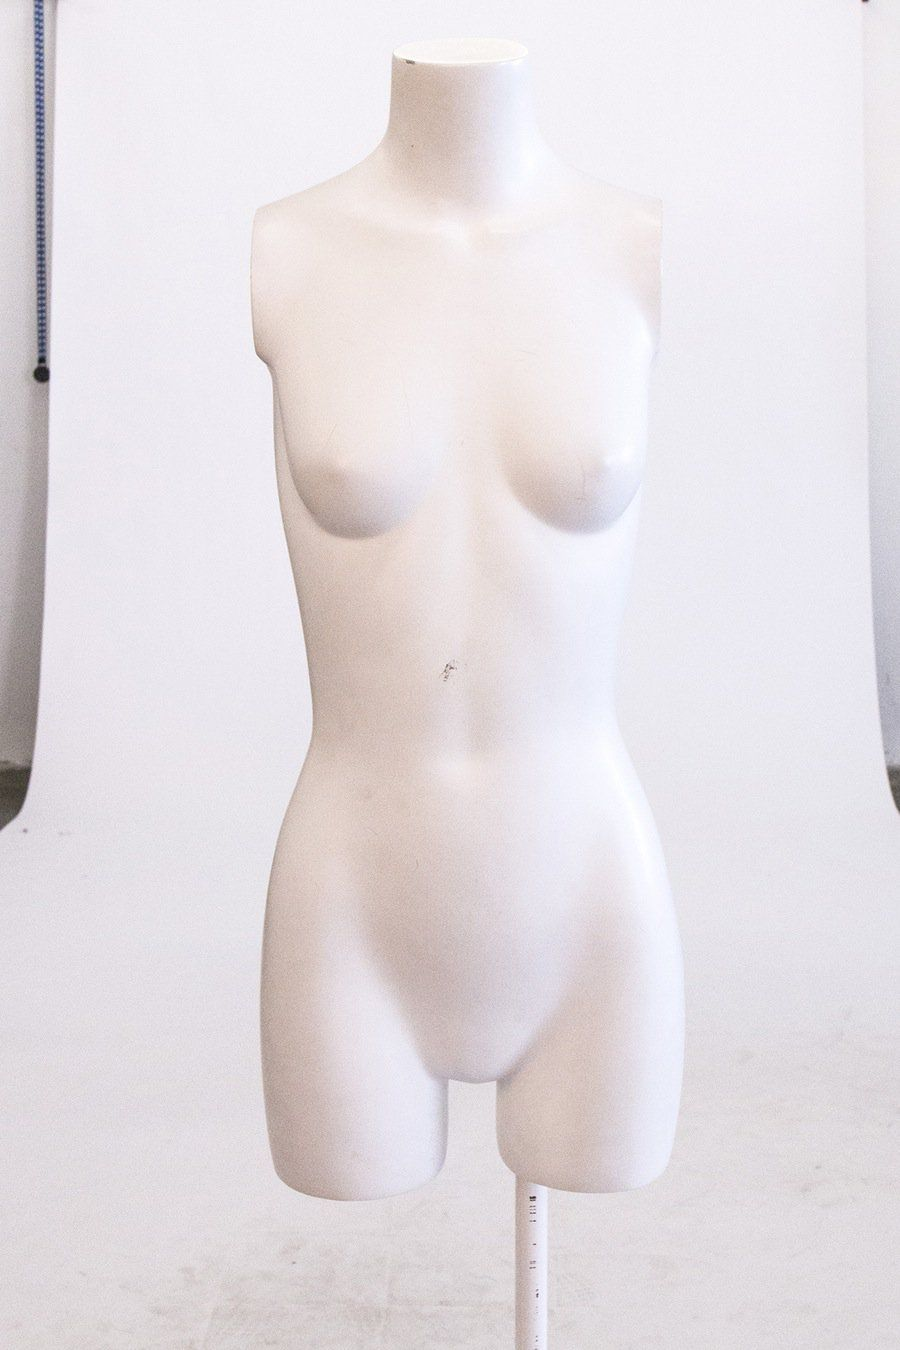 nude-mannequin-white-background